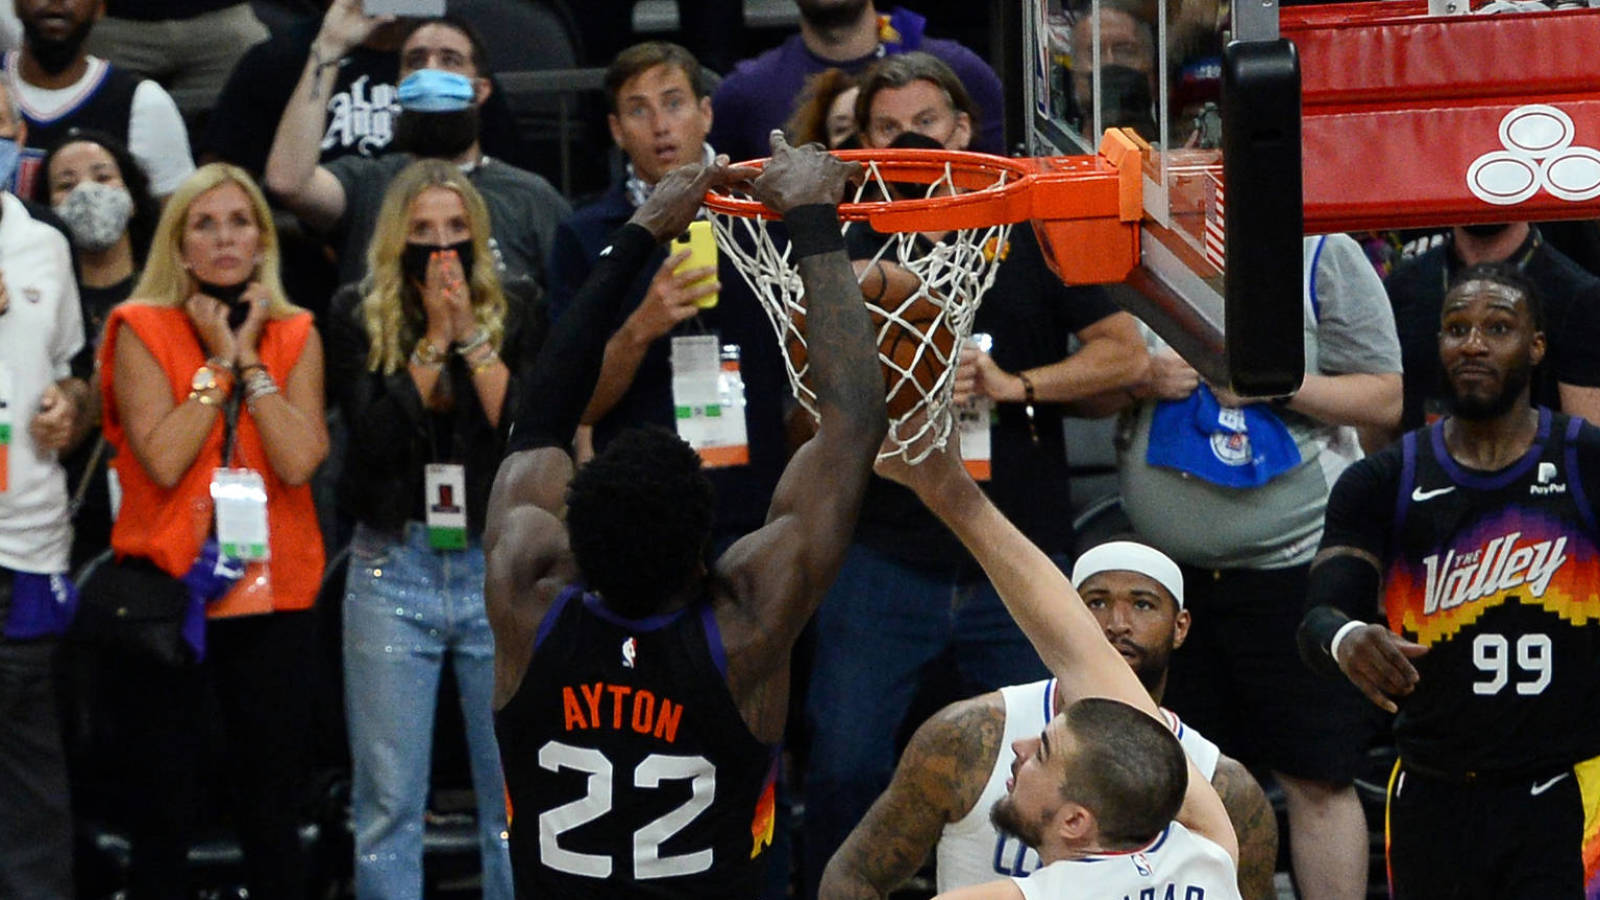 Sun's beat Clippers in the last second of Deandre Ayton alley-oop